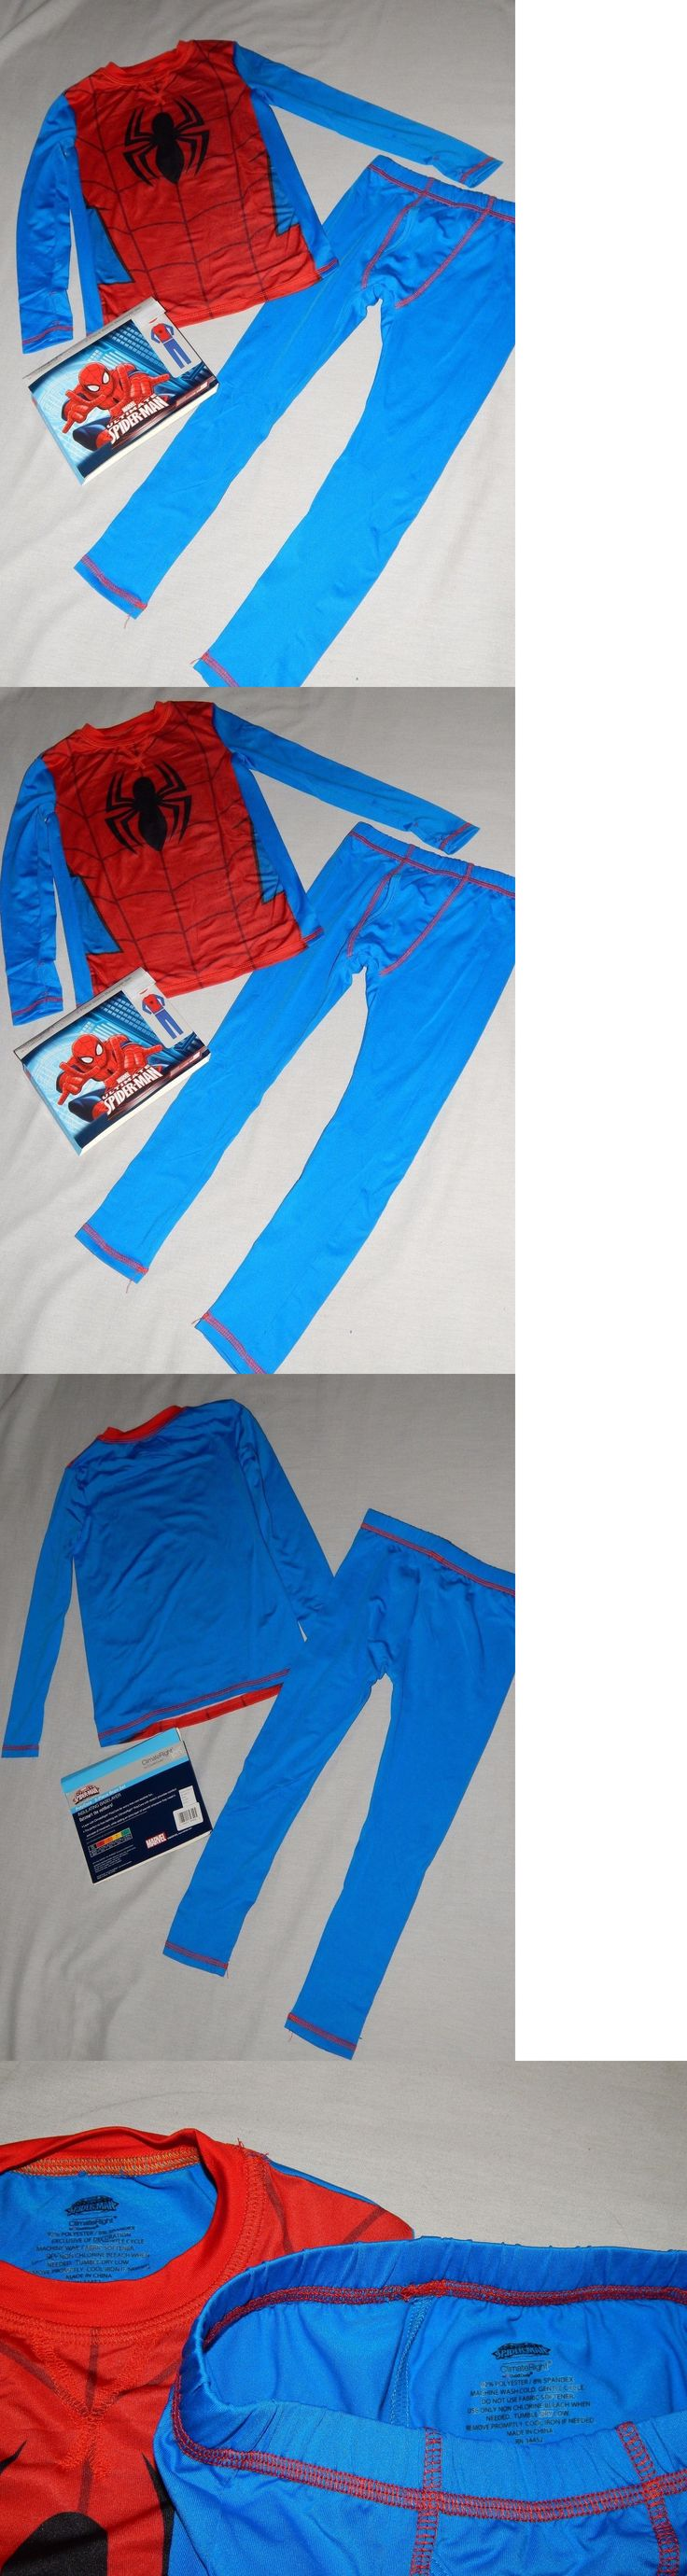 Underwear 51973: New Ultimate Spiderman 2 Pc Set Kids Boys Baselayer Shirt Pants Outfit Underwear -> BUY IT NOW ONLY: $30.99 on eBay!